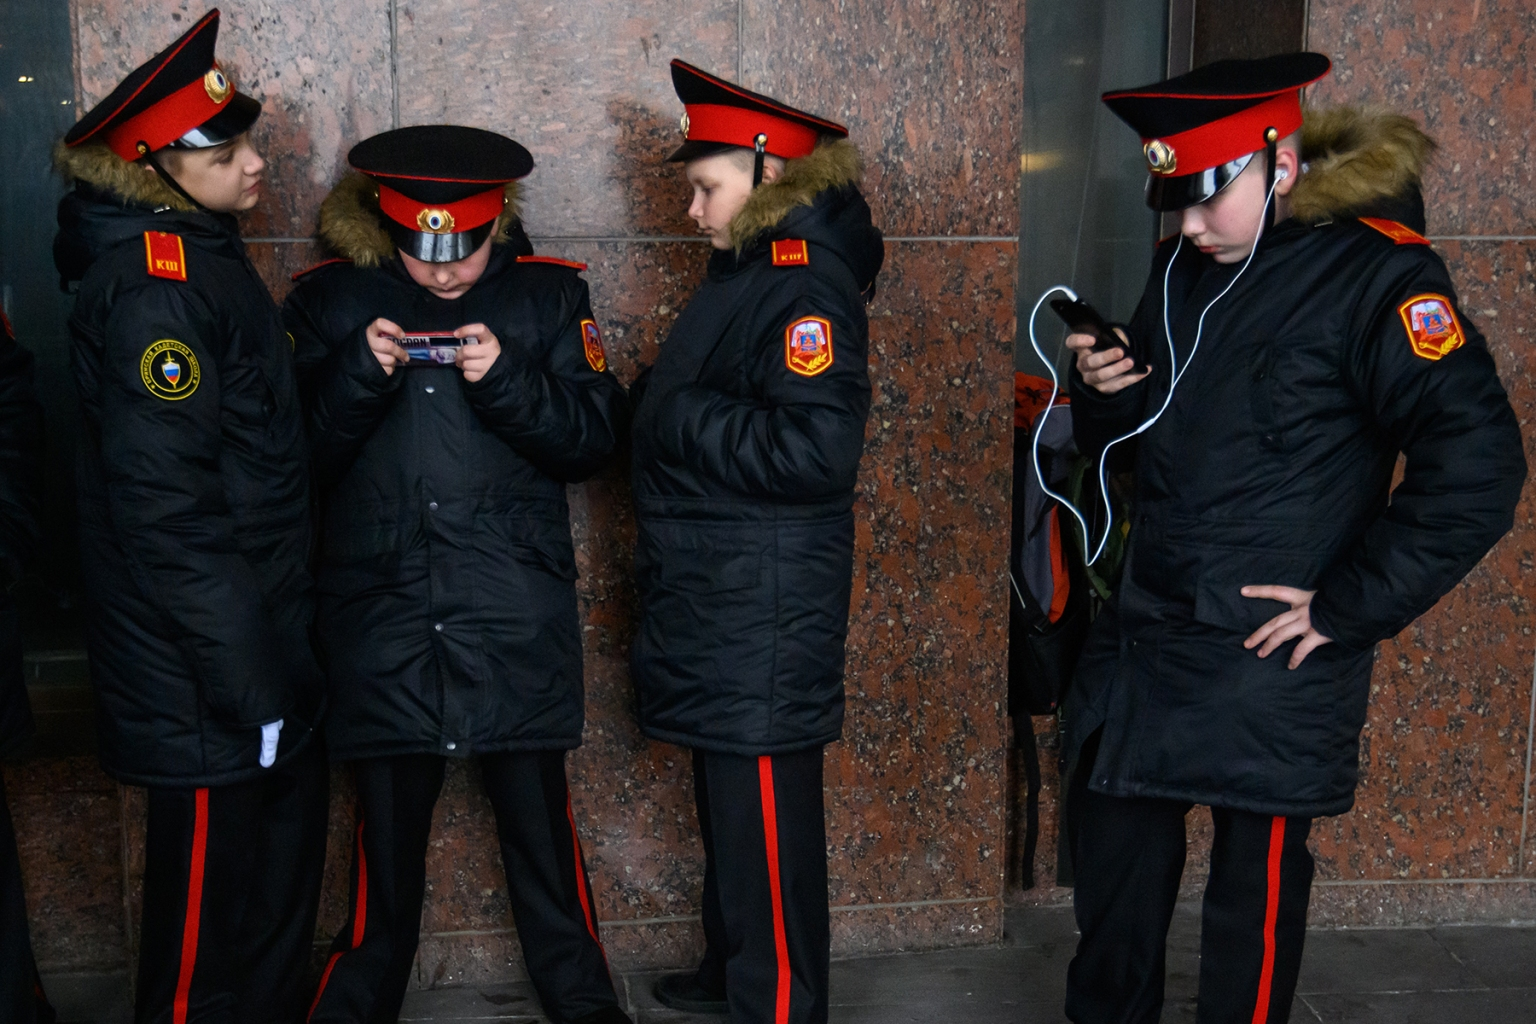 Russian cadets use their mobile phones during the annual cadet schools get-together in Moscow on March 29. MLADEN ANTONOV/AFP/Getty Images